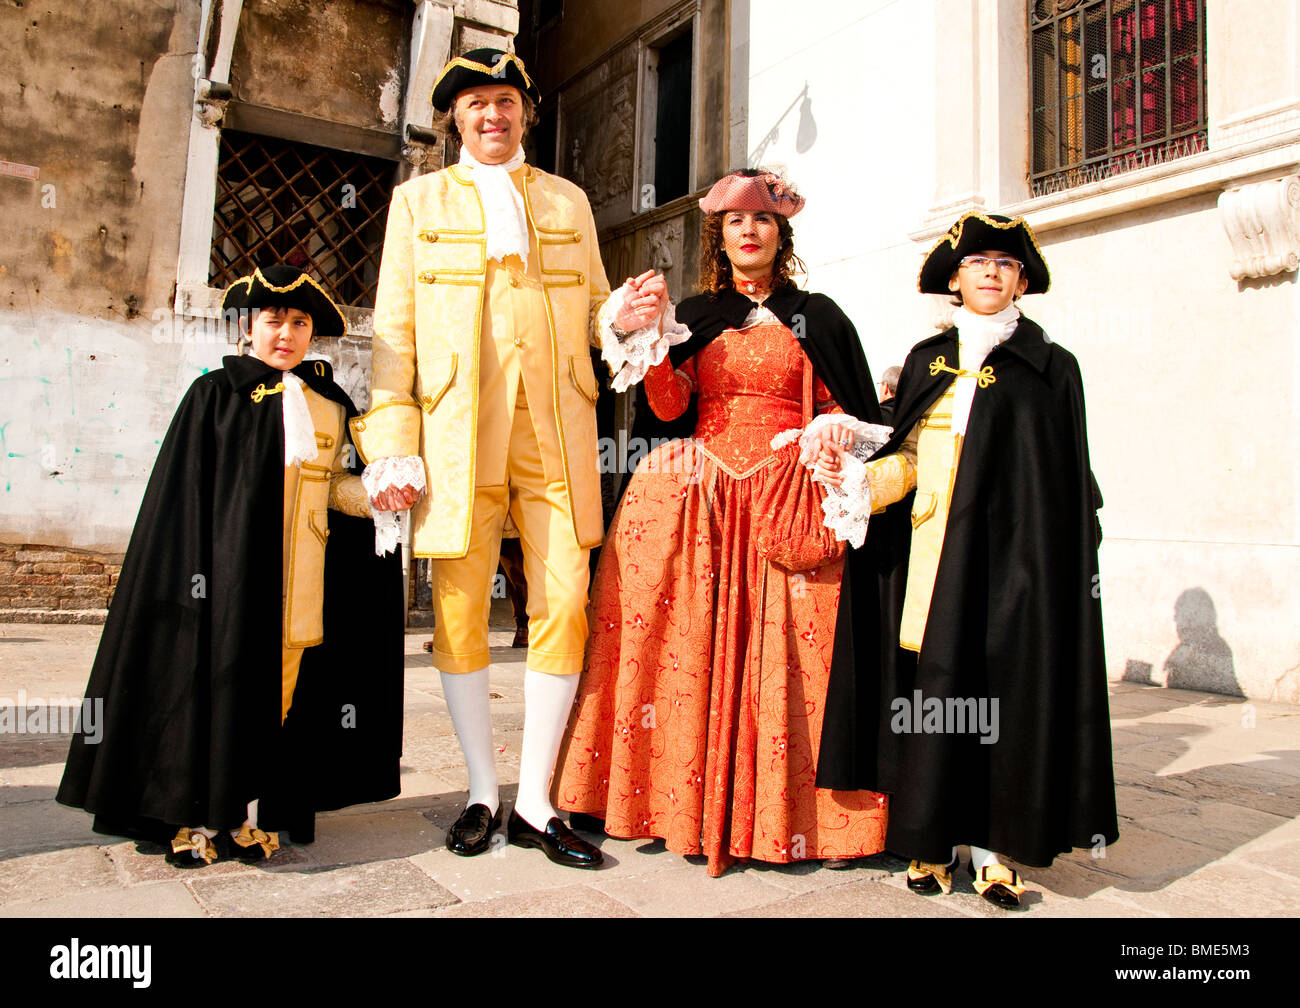 Venice Carnival, Italy Costumed participants - Stock Image